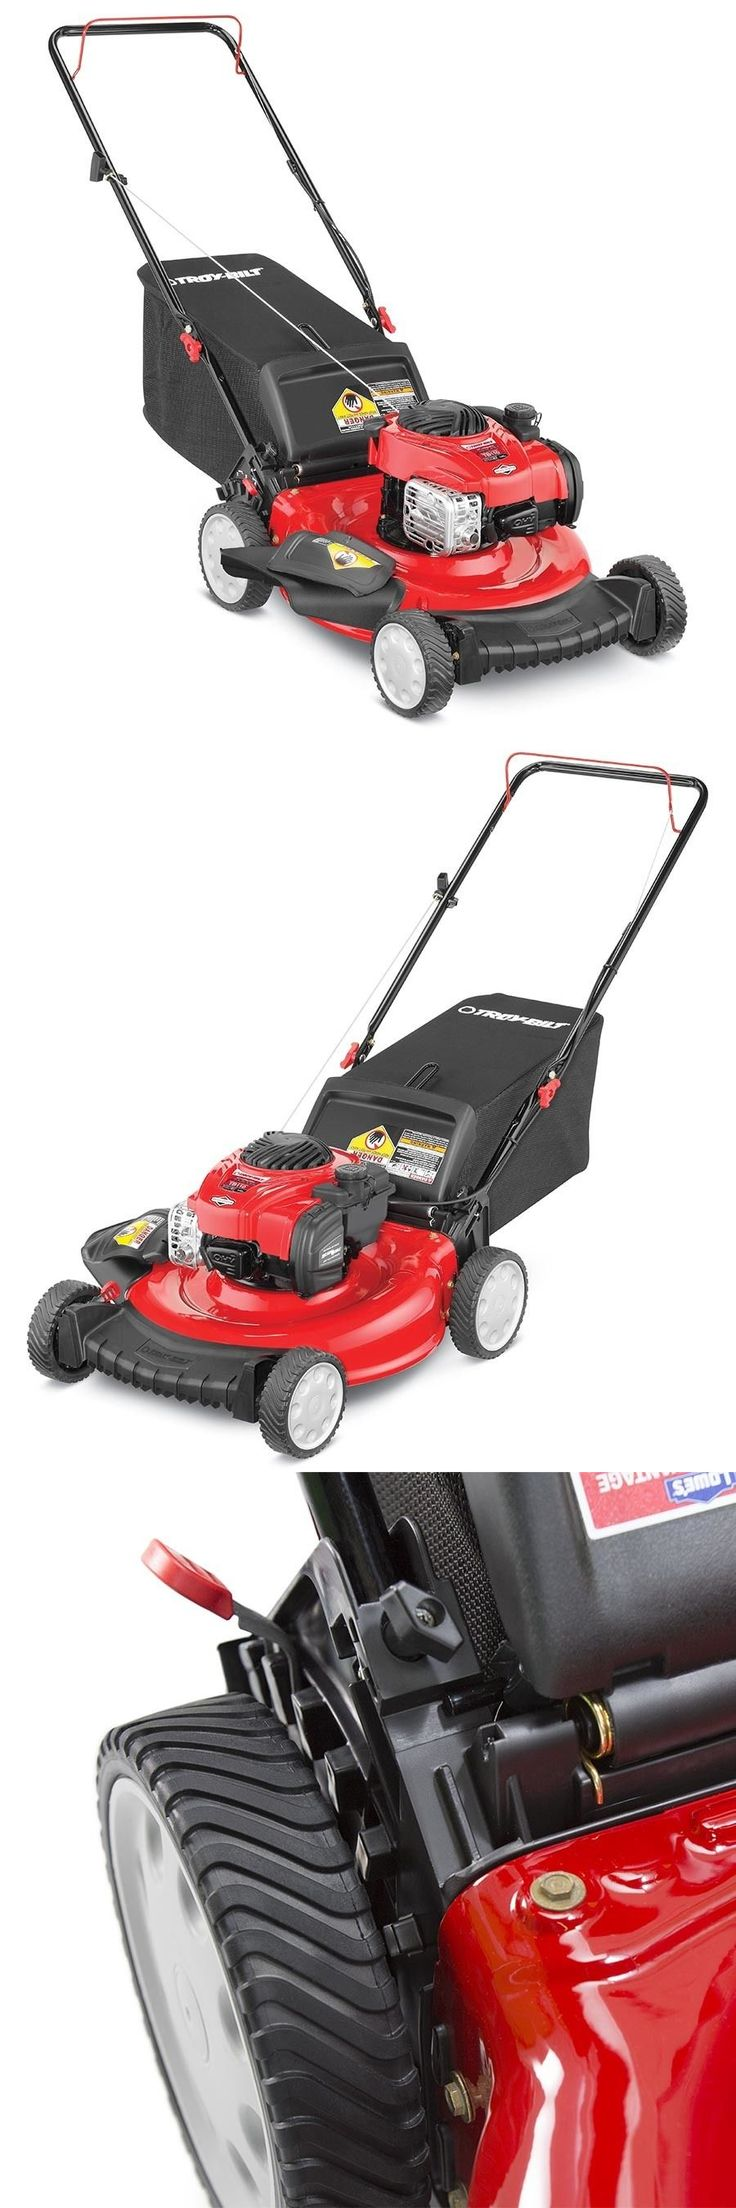 Chippers Shredders and Mulchers 42228: Troy-Bilt Tb110 140-Cc 21-In Residential Gas Push Lawn Mower New! Sale! -> BUY IT NOW ONLY: $130 on eBay!